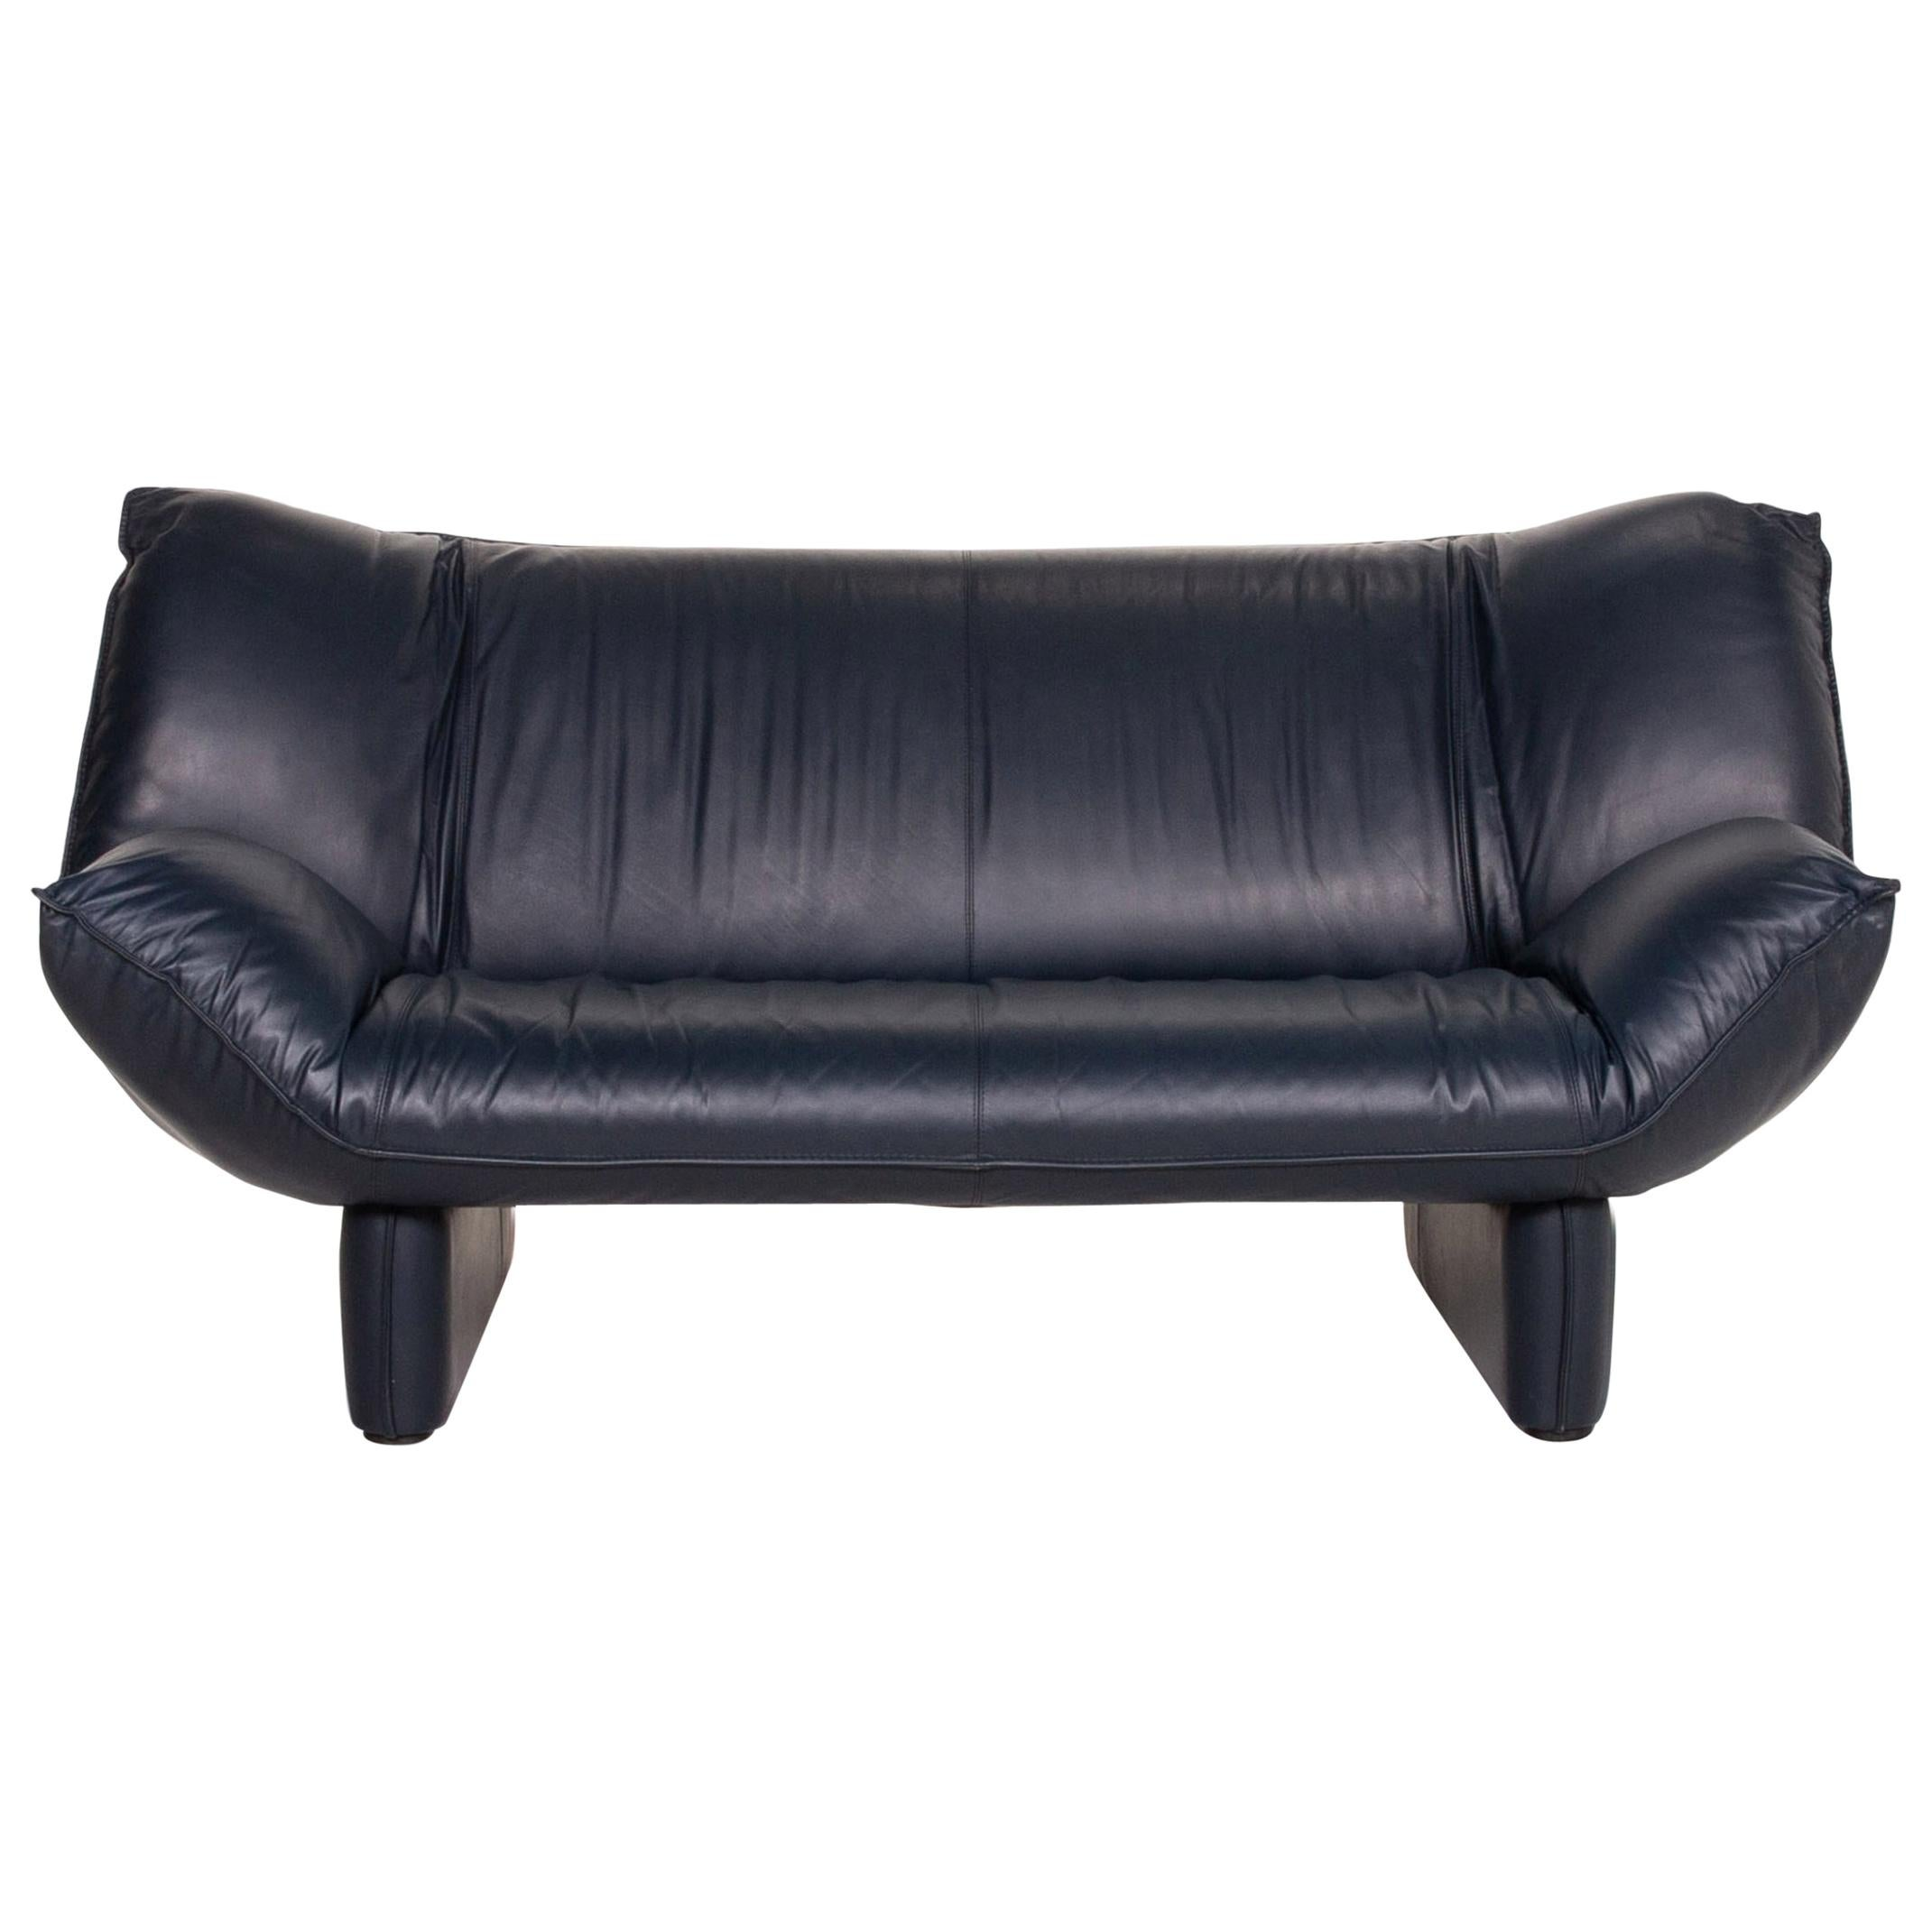 Leolux Tango Leather Sofa Blue Dark Blue Two-Seat Function Couch